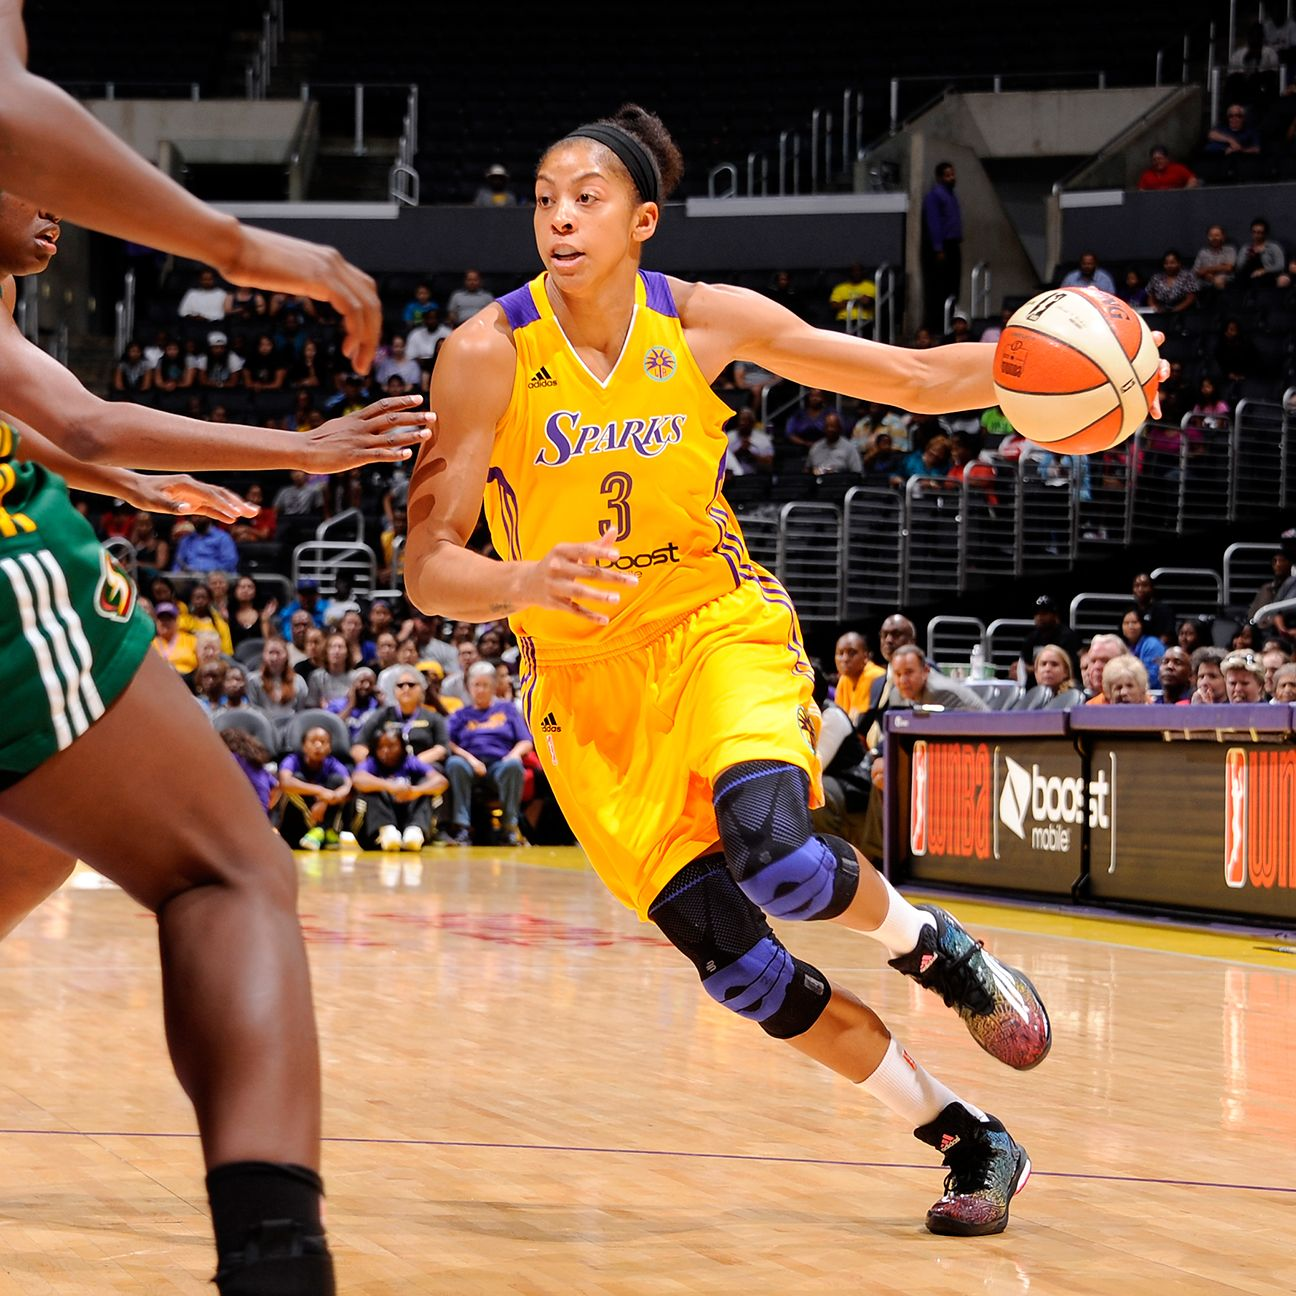 Parker Refreshed To Return To Sparks On July 29 Candace Parker Basketball Girls Womens Basketball